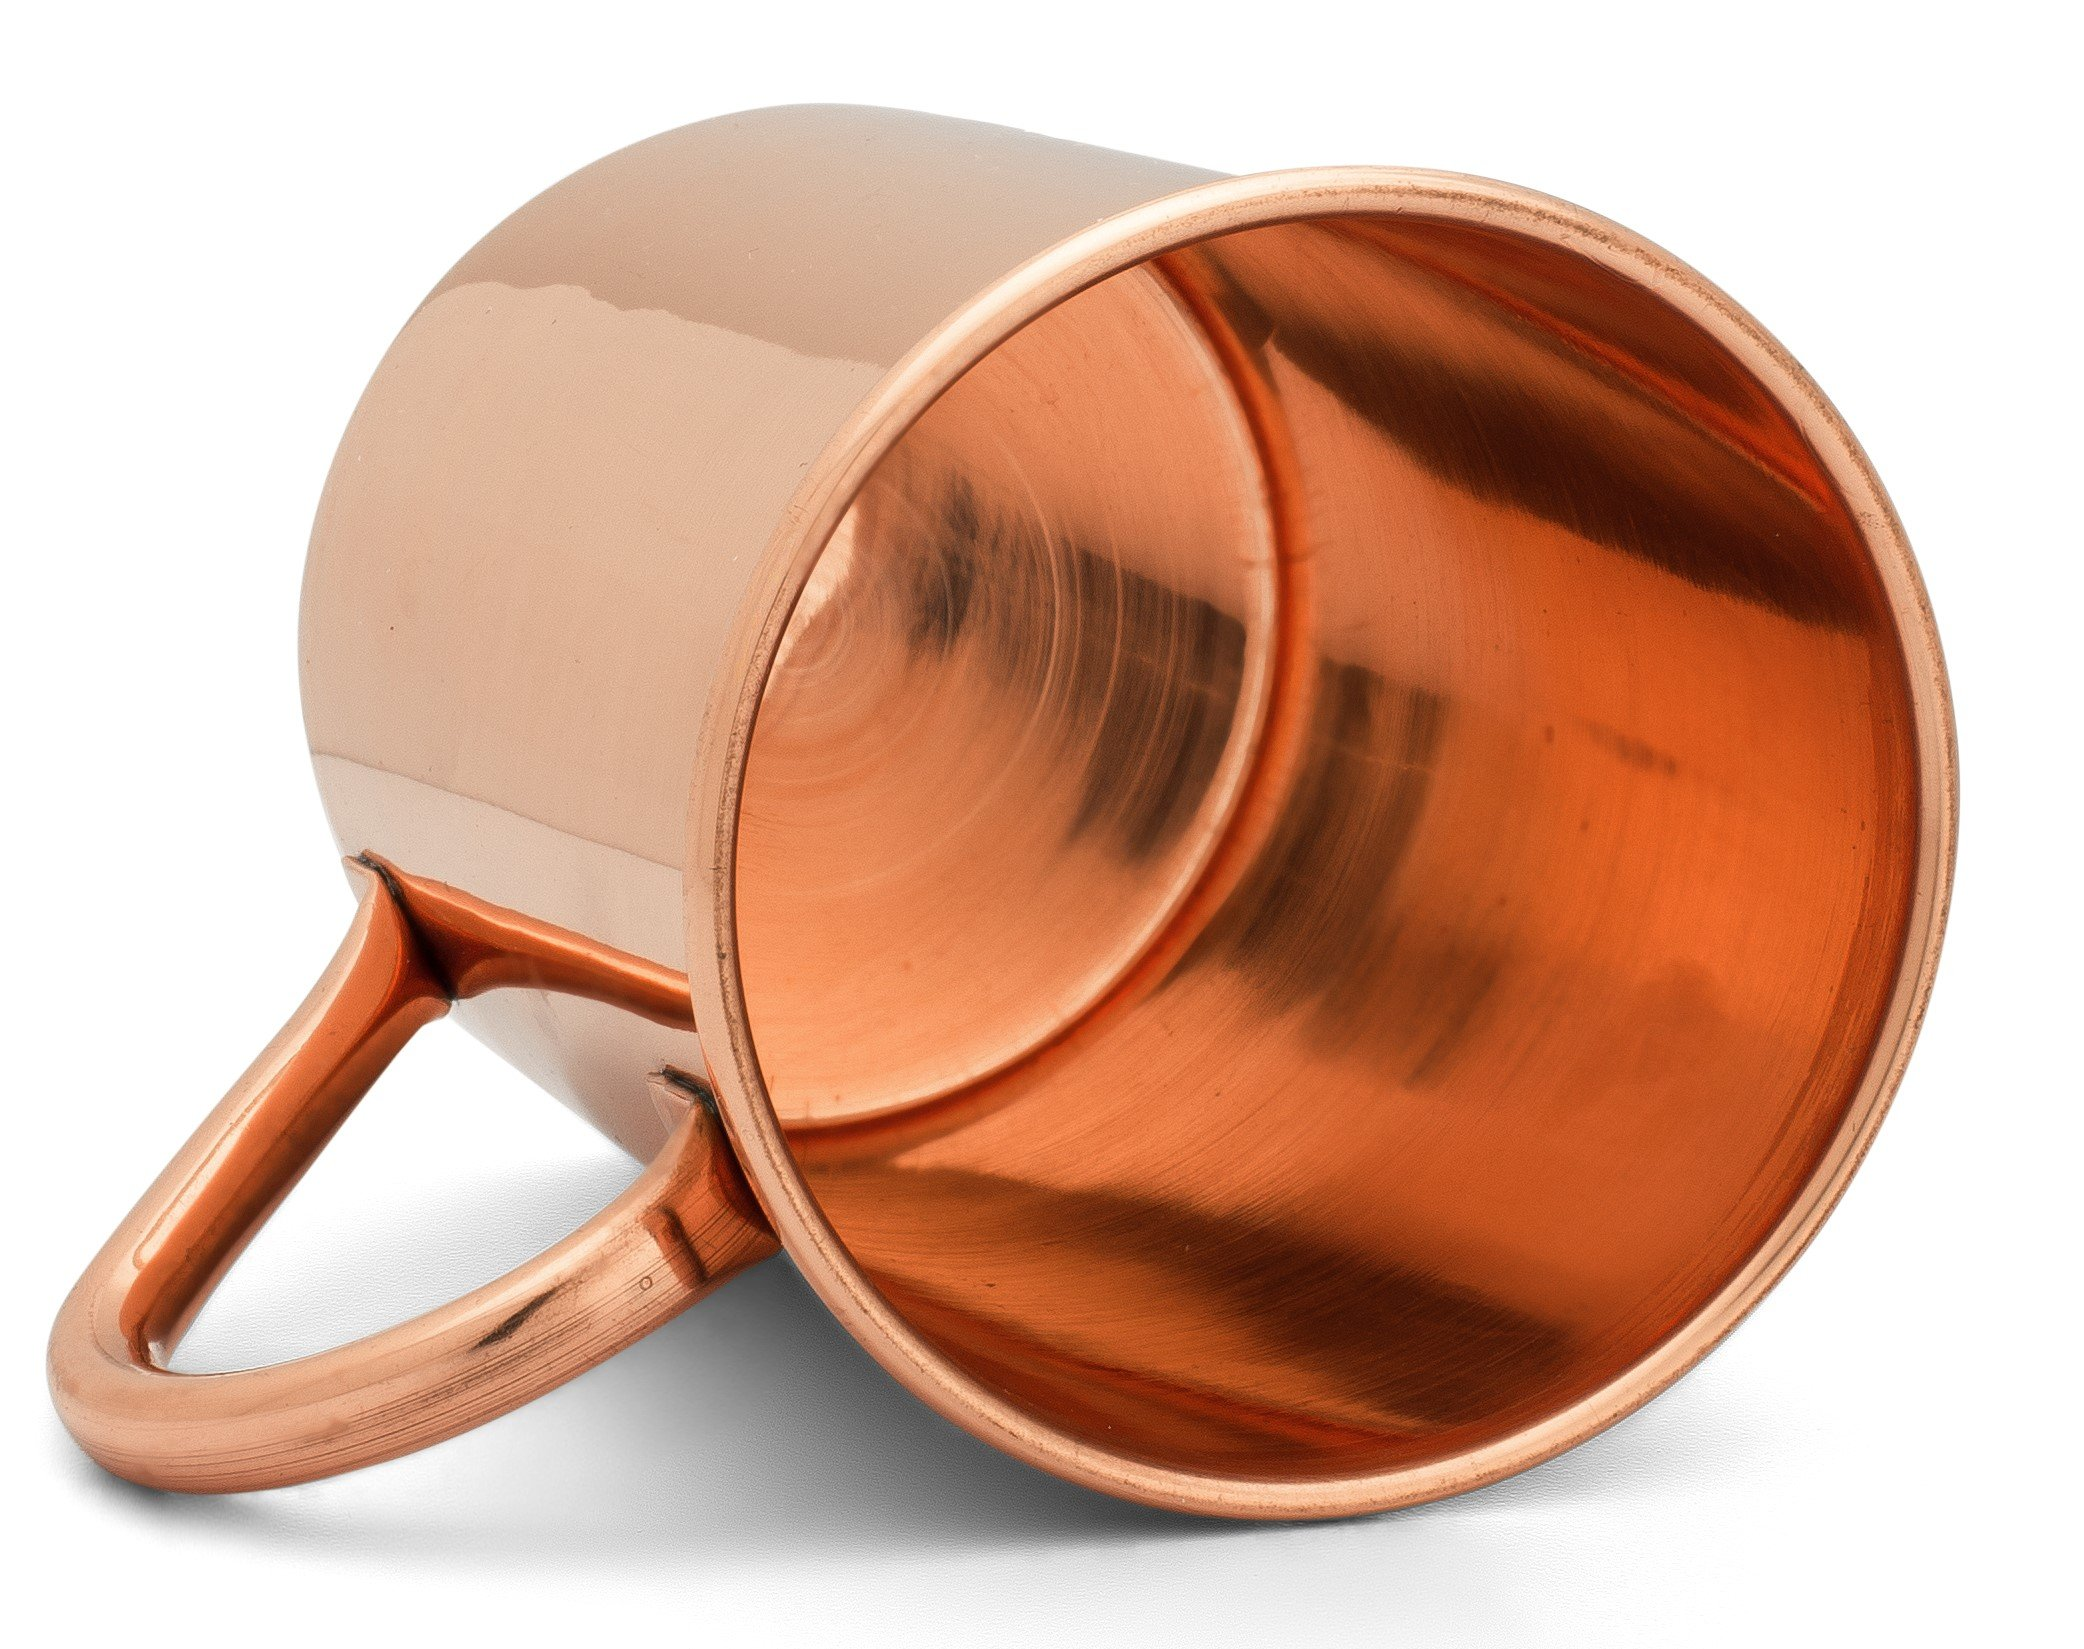 Moscow Mule Copper Mug by Copper Mules – Handcrafted Pure Copper – Smooth Finish – Classic Riveted Handle – Holds 16oz